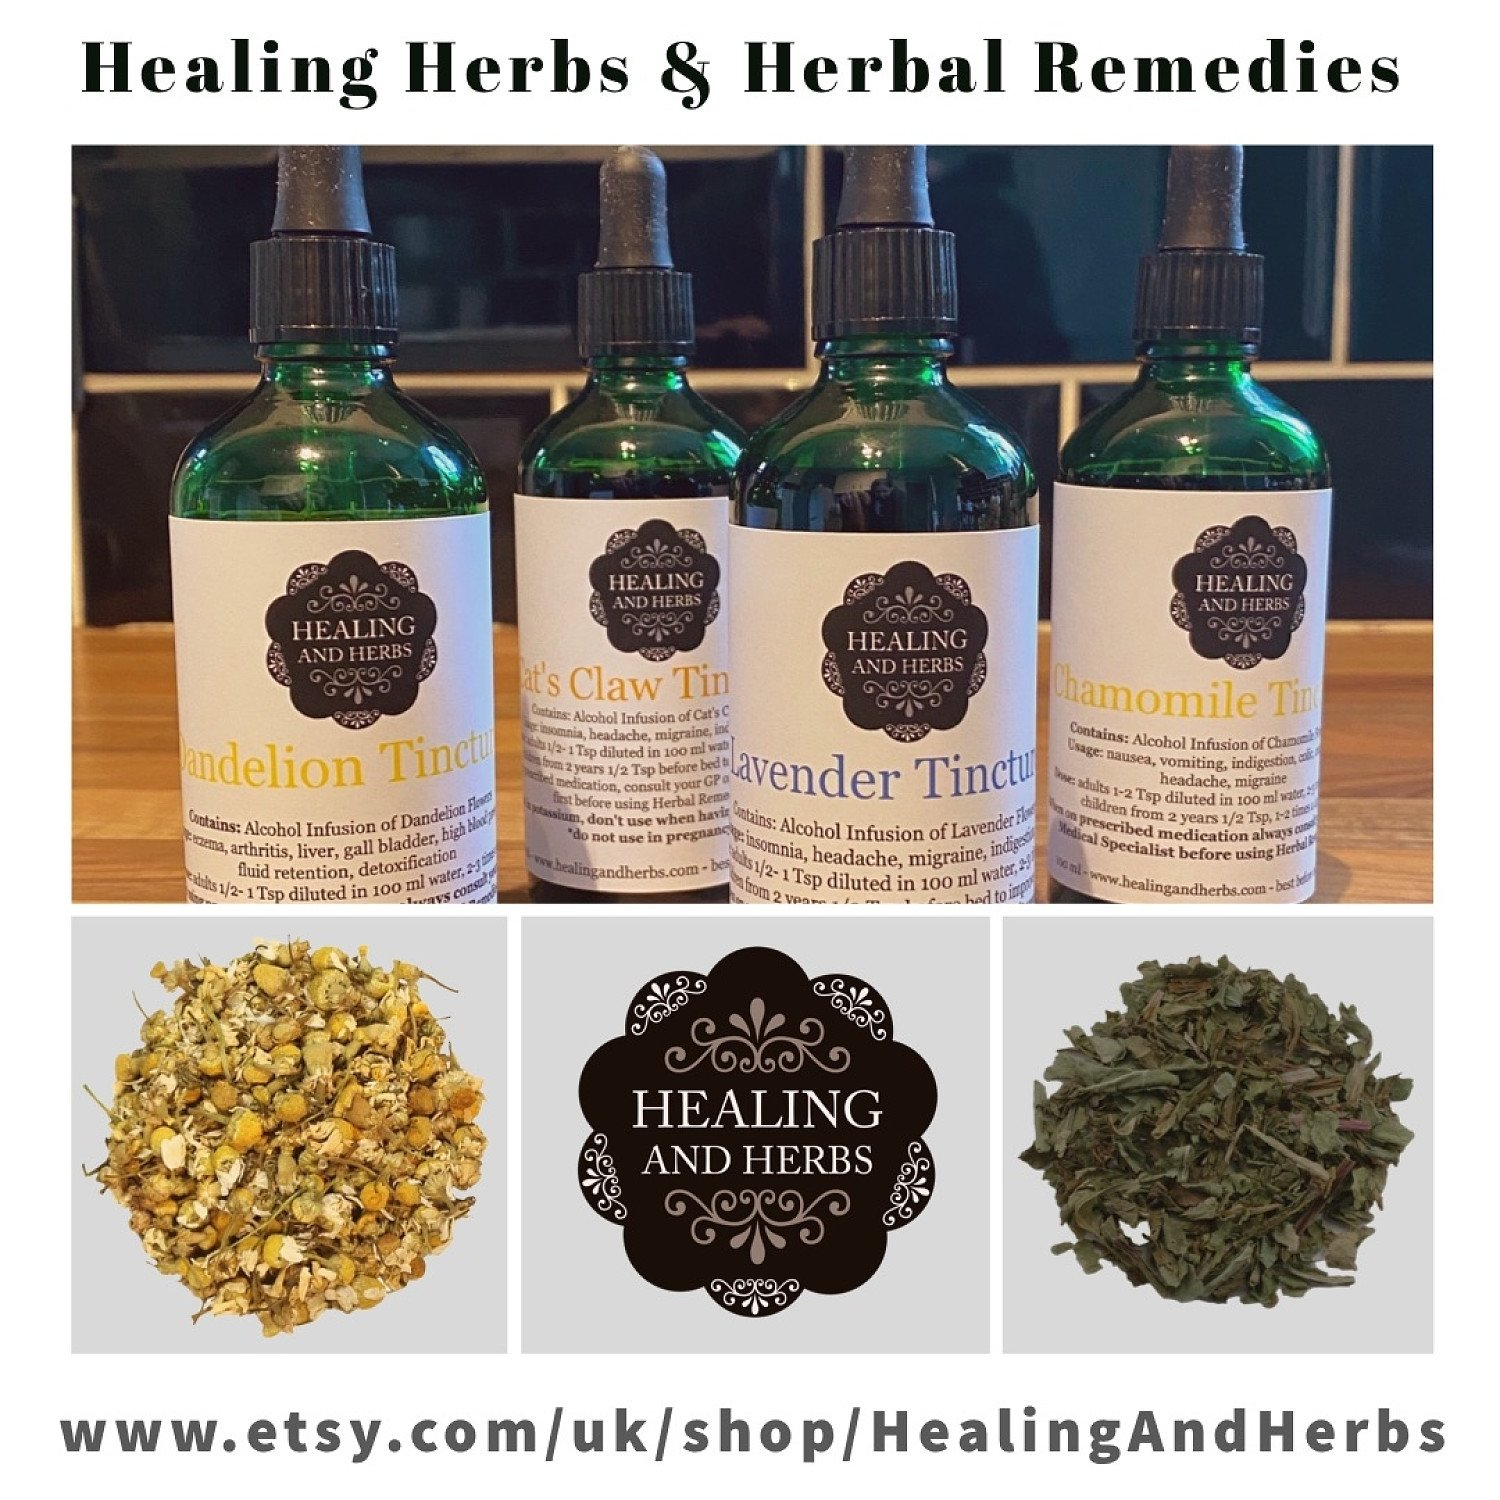 Check out our Online Herbal Shop!